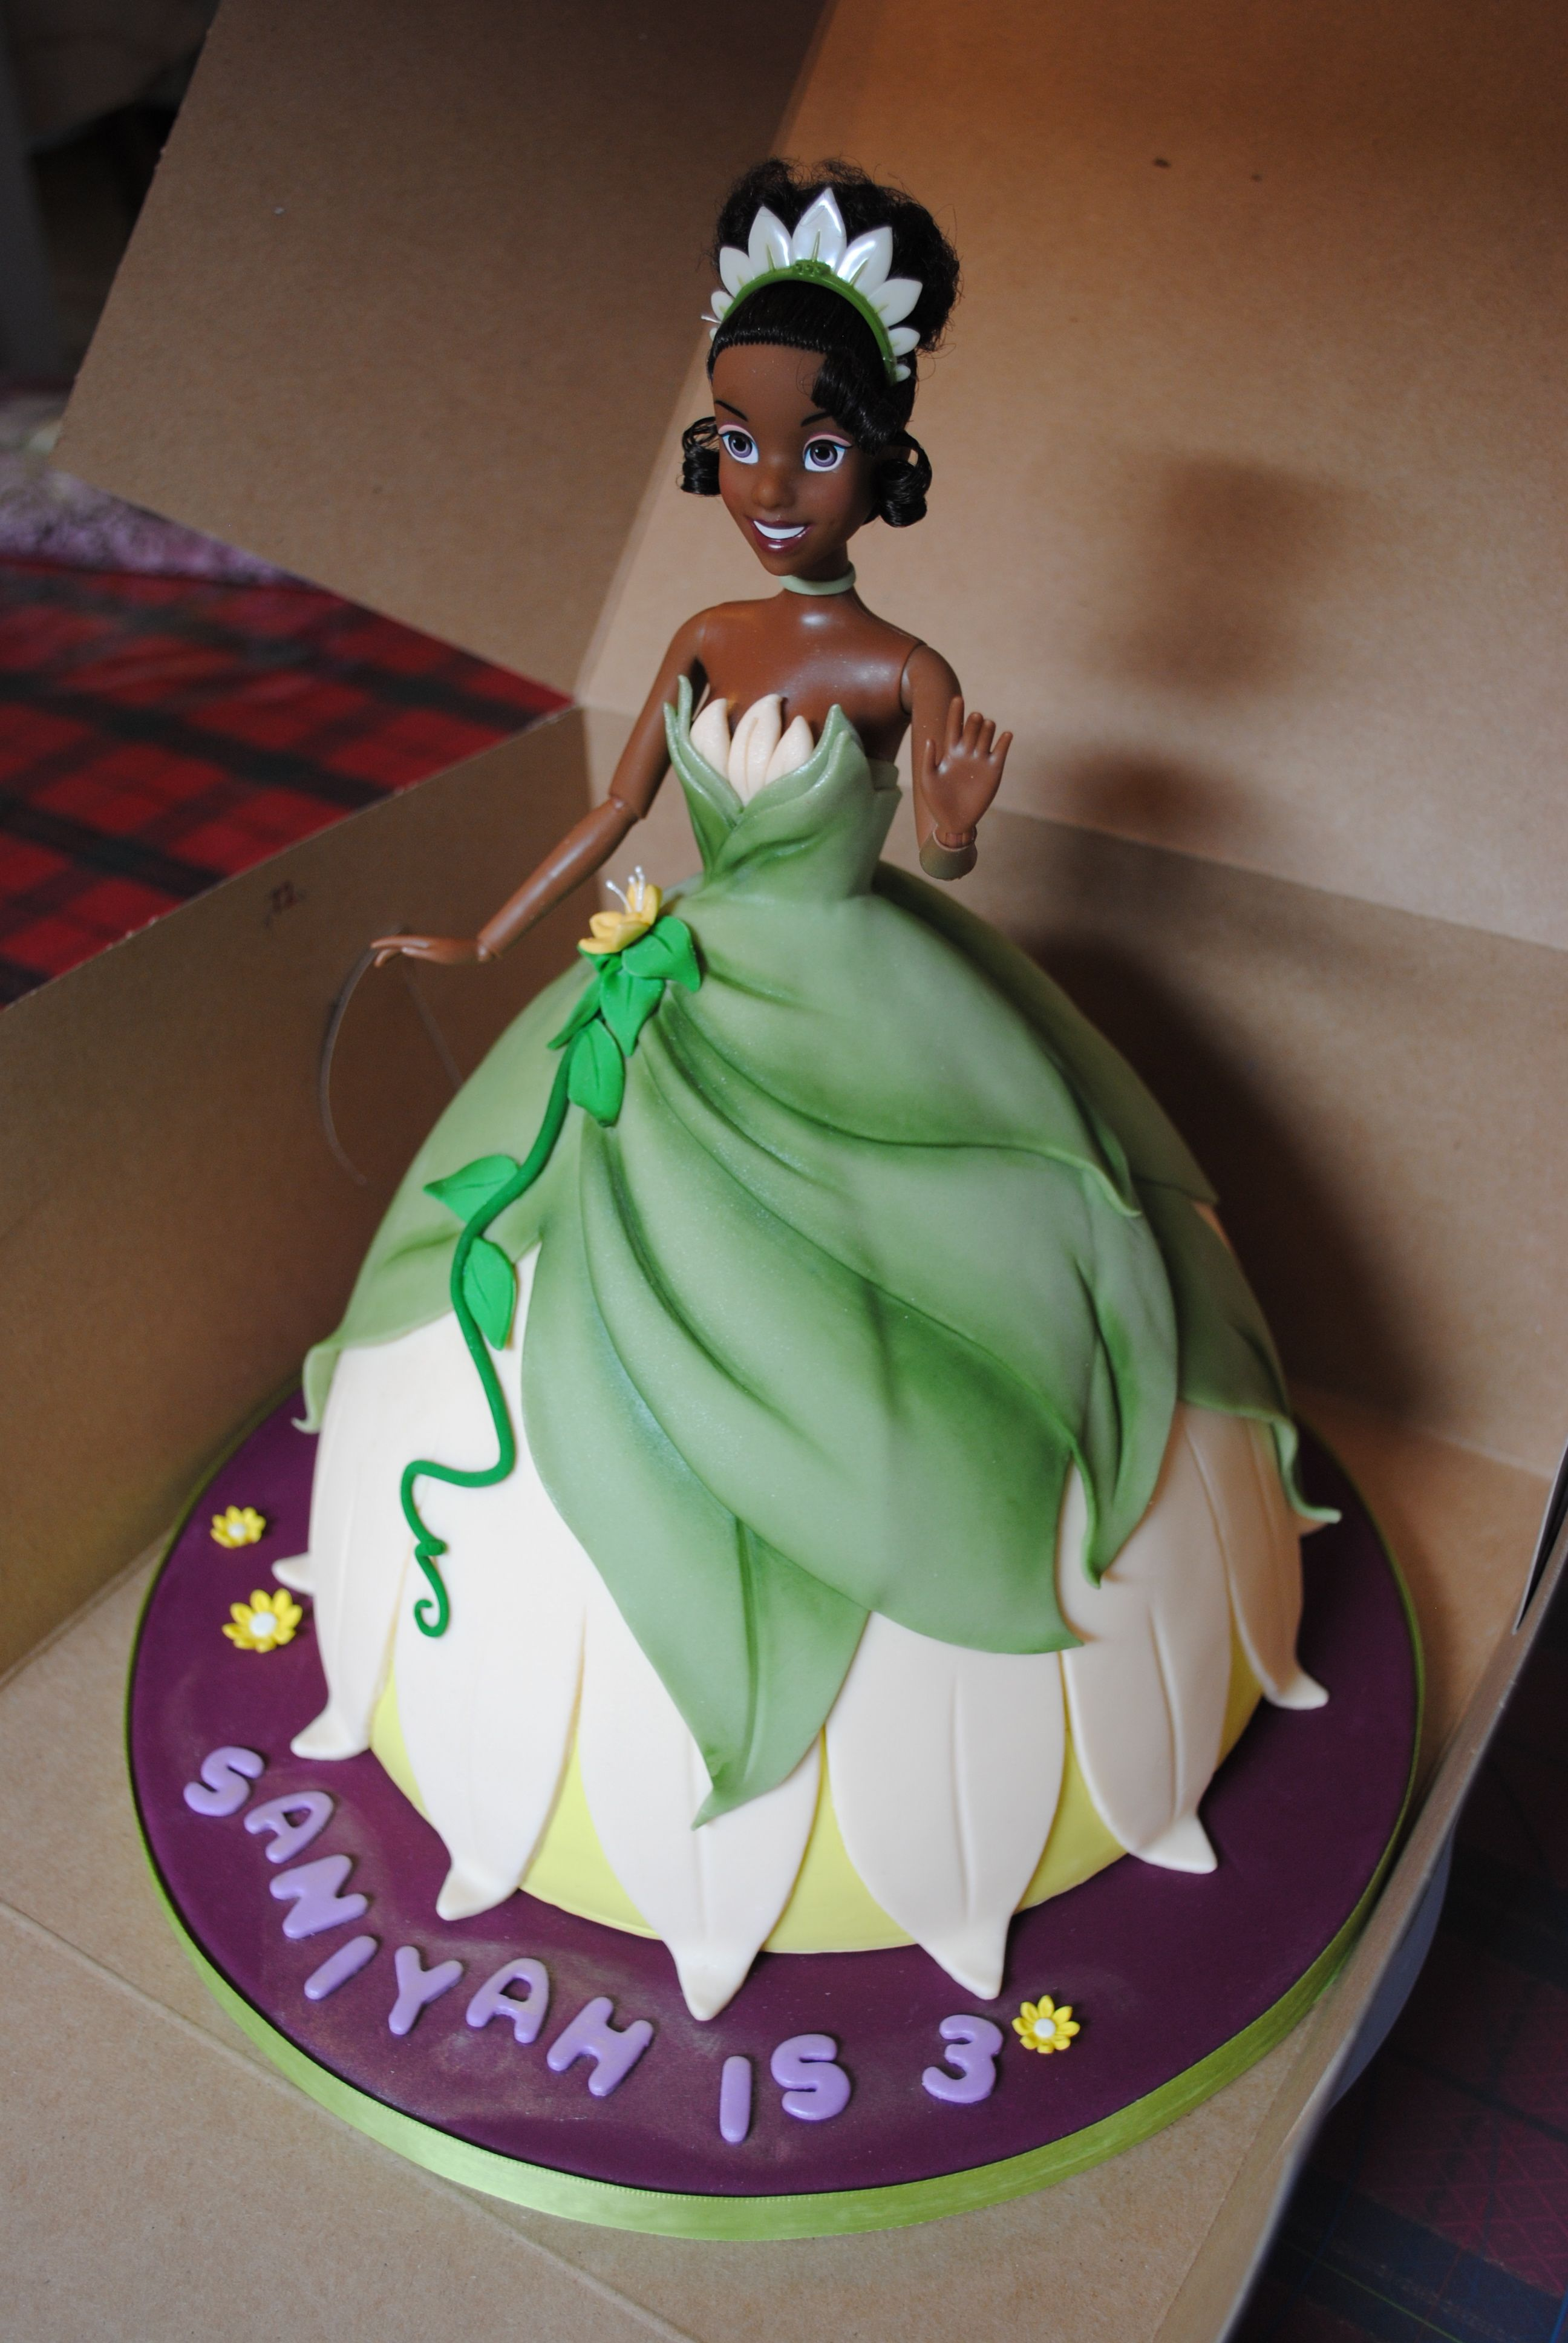 Great Idea Princess Tiana Bday Cake For My Little Girl